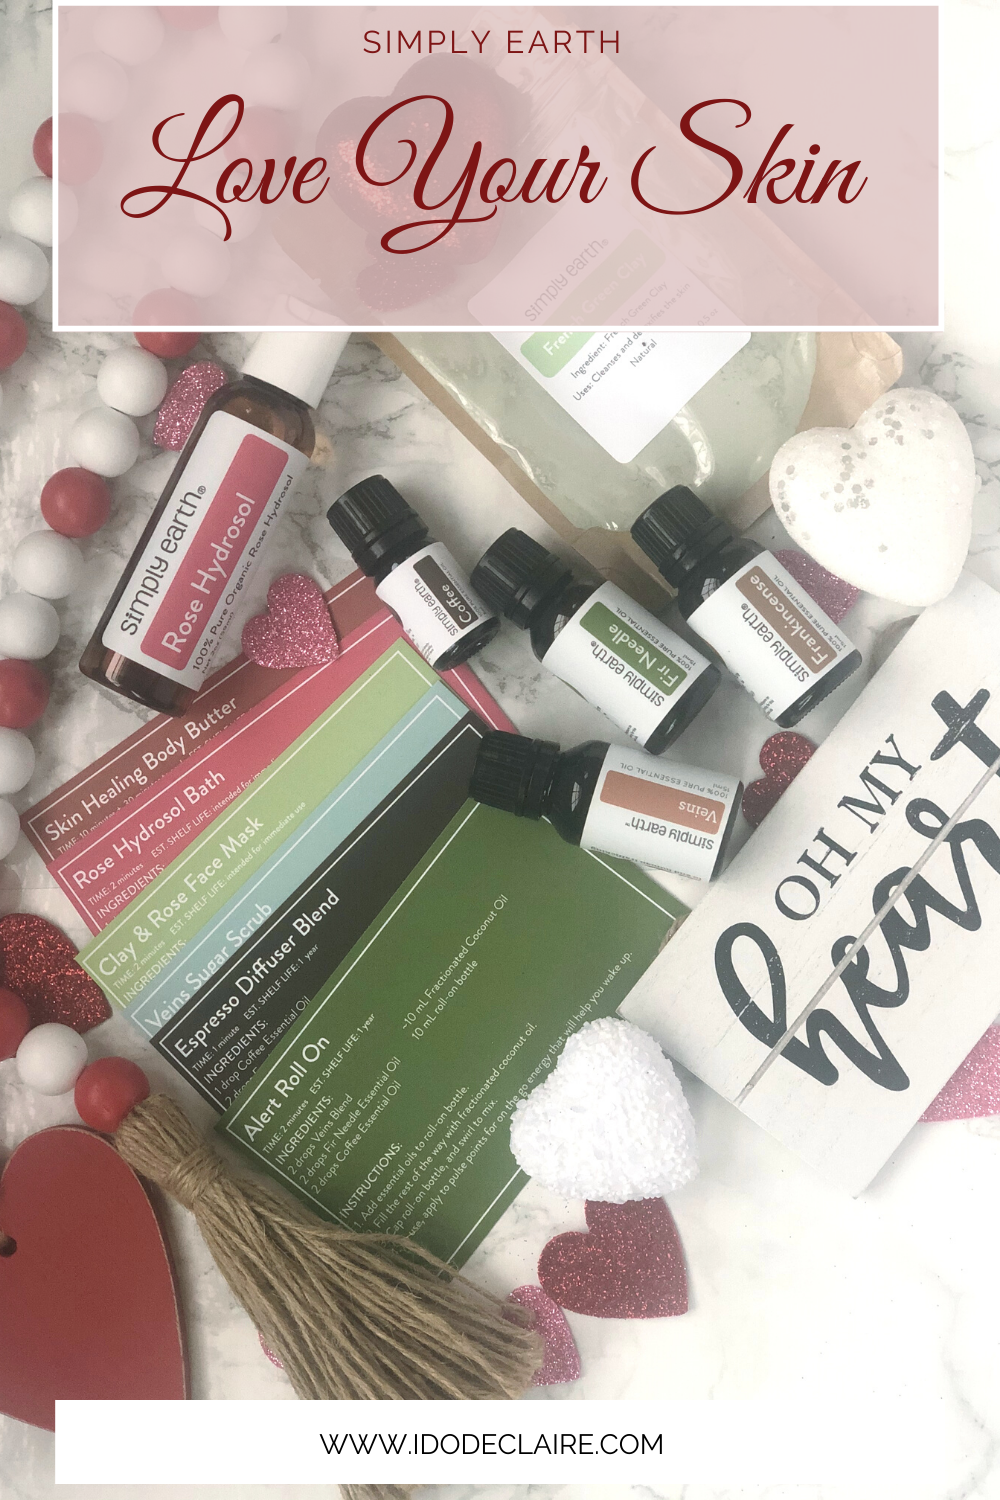 Love Your Skin with Simply Earth's February Box!